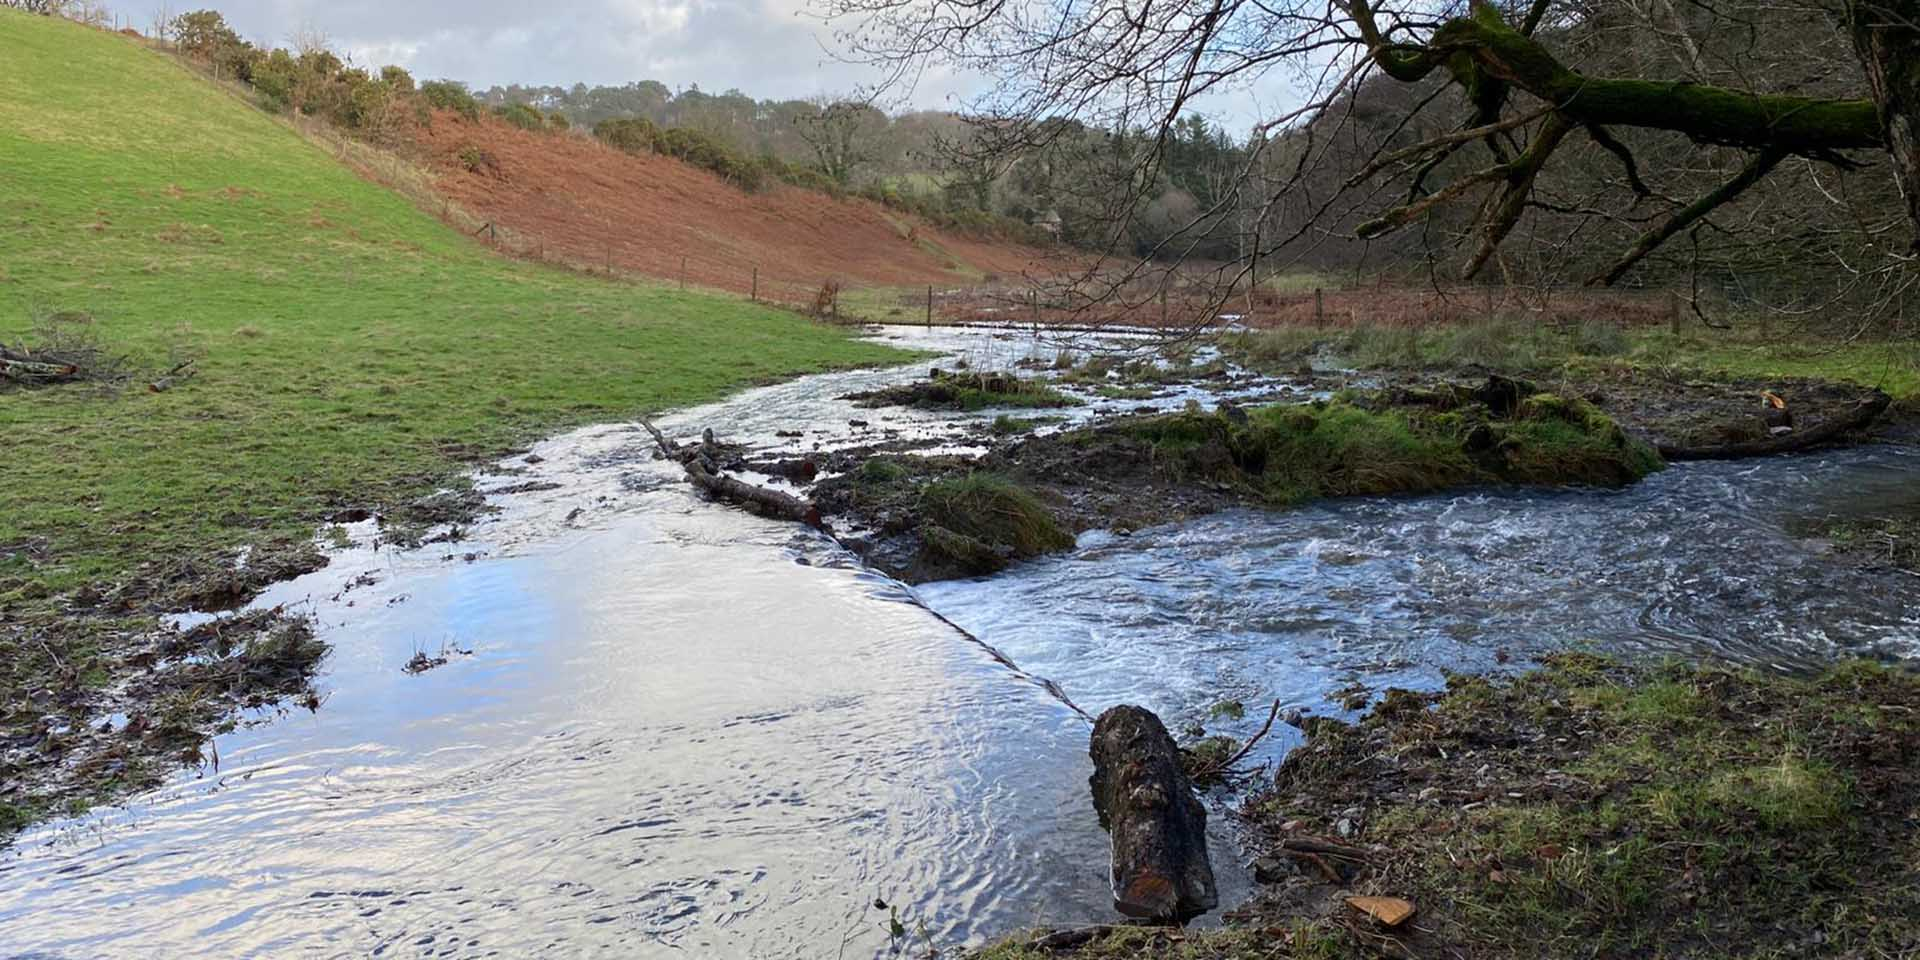 River water flowing out into floodplain